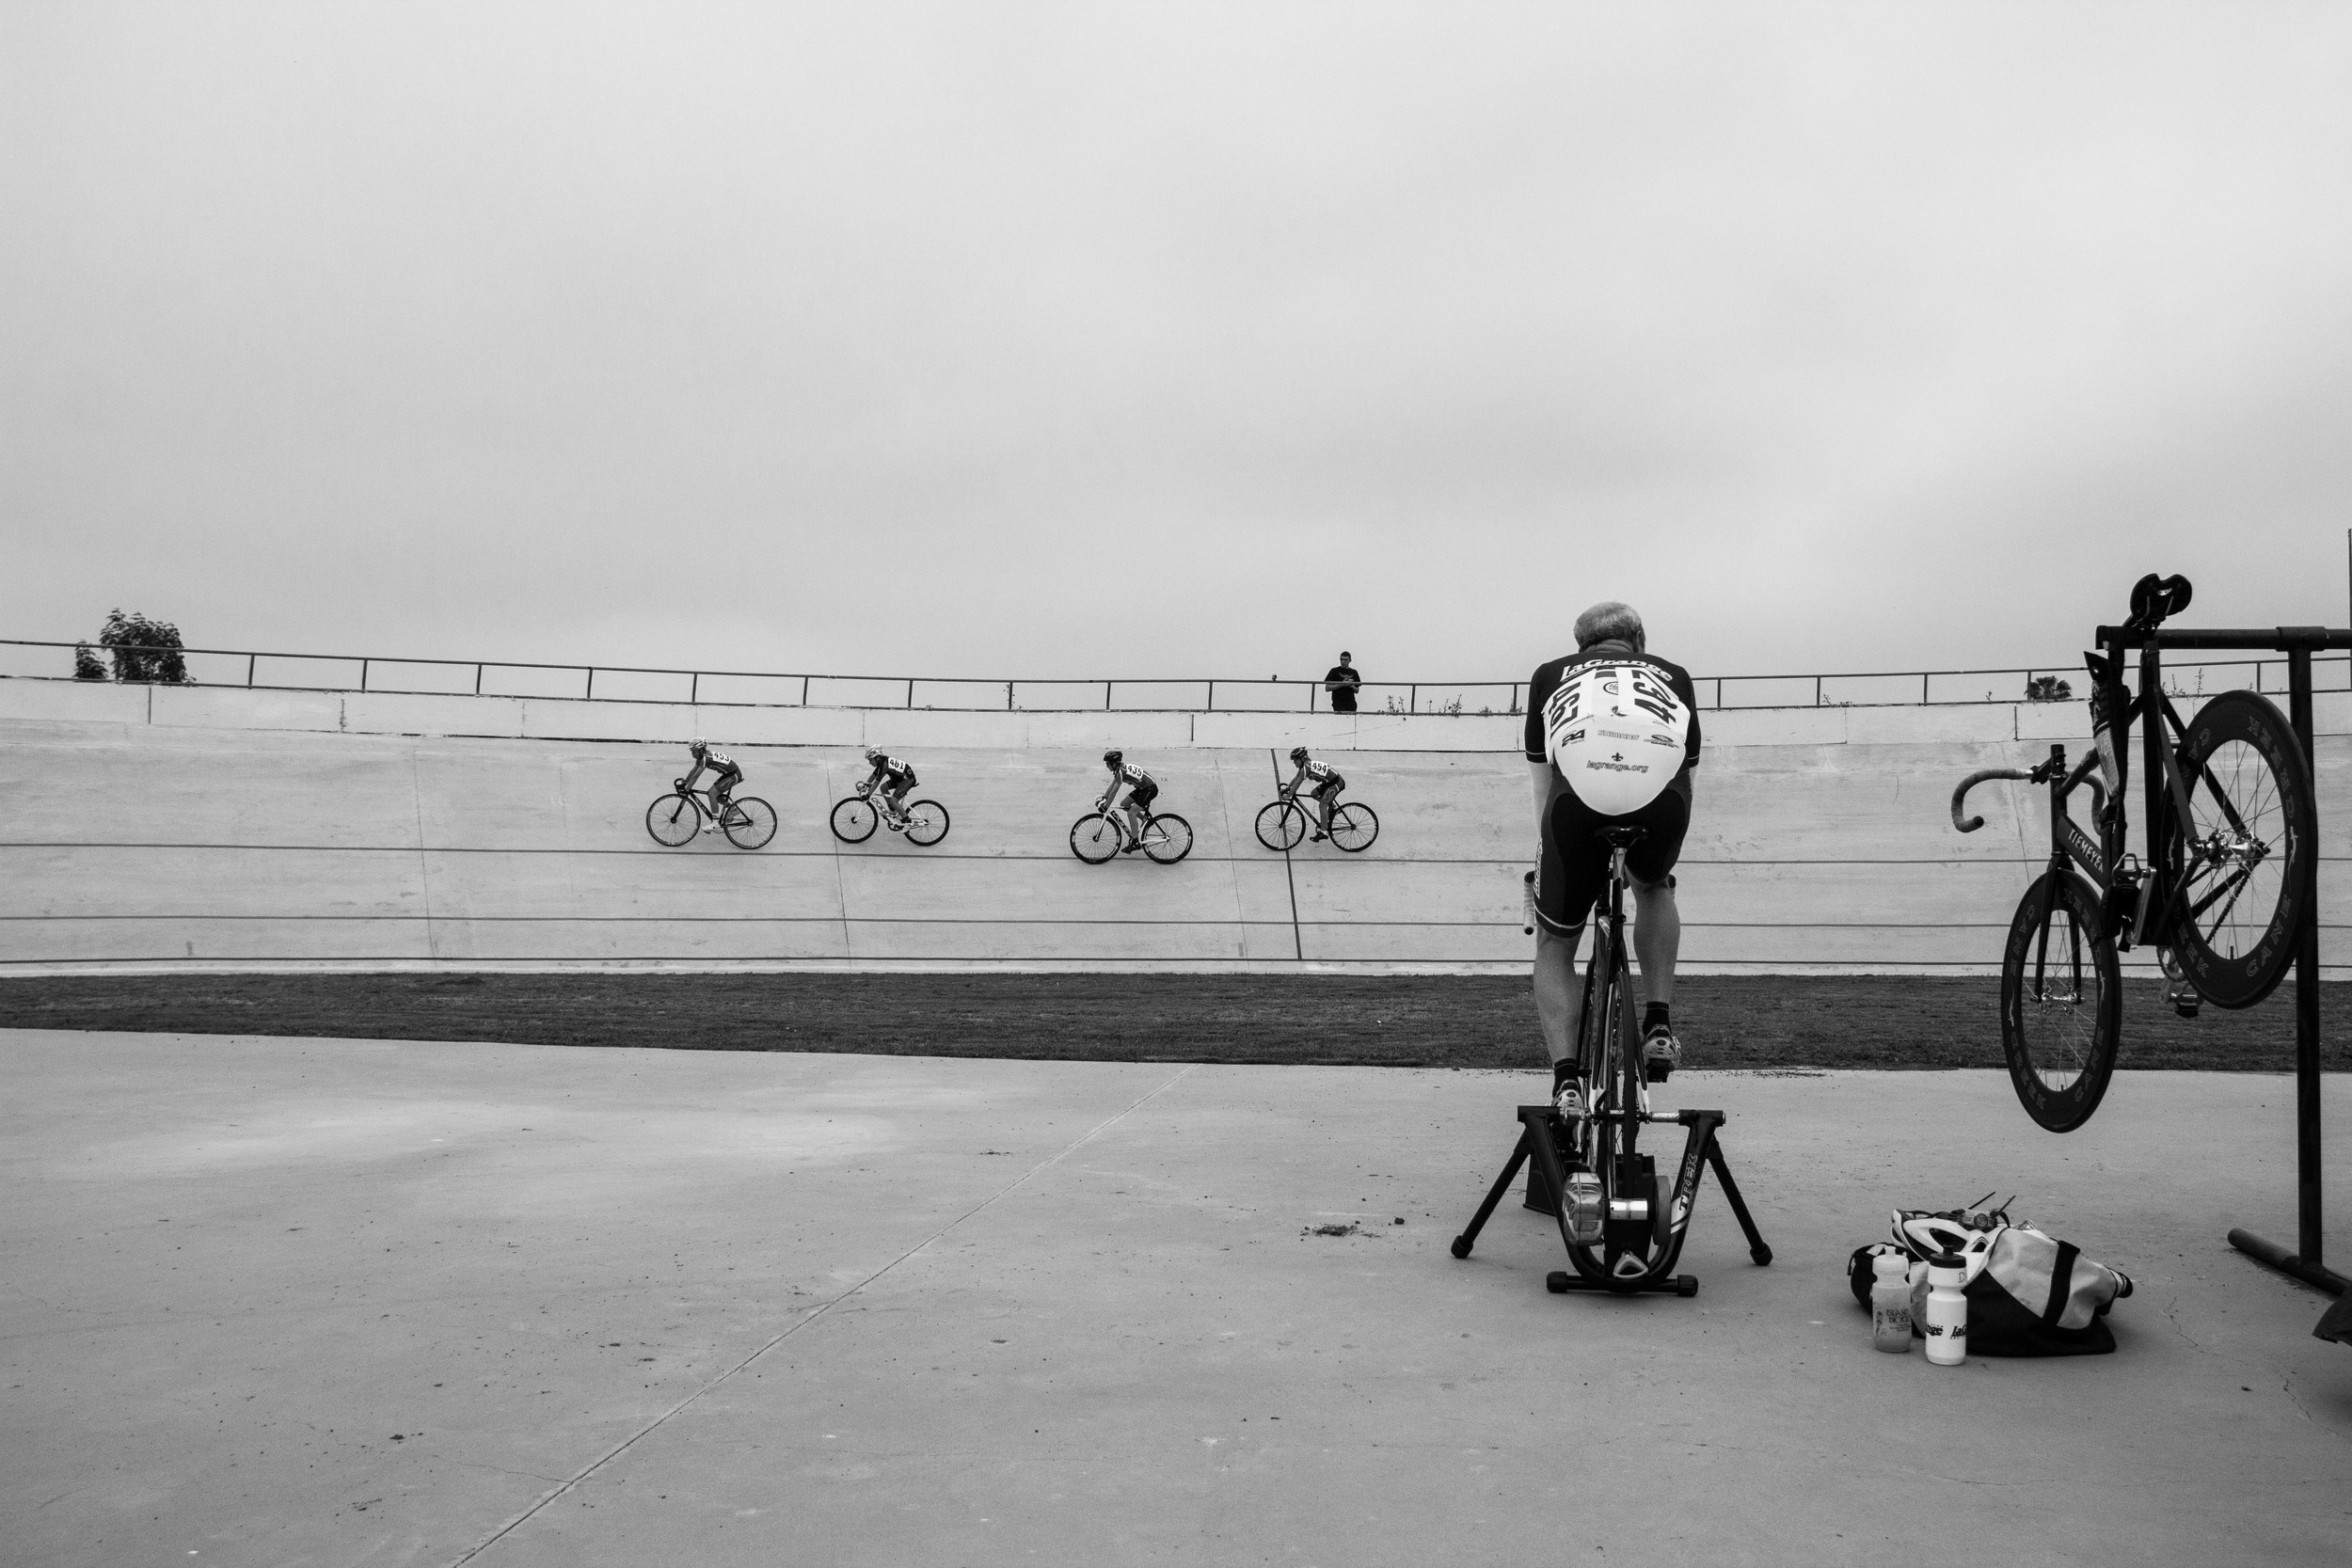 7. A lone rider warms up while watching the races at the Encino Velodrome on a grey day.